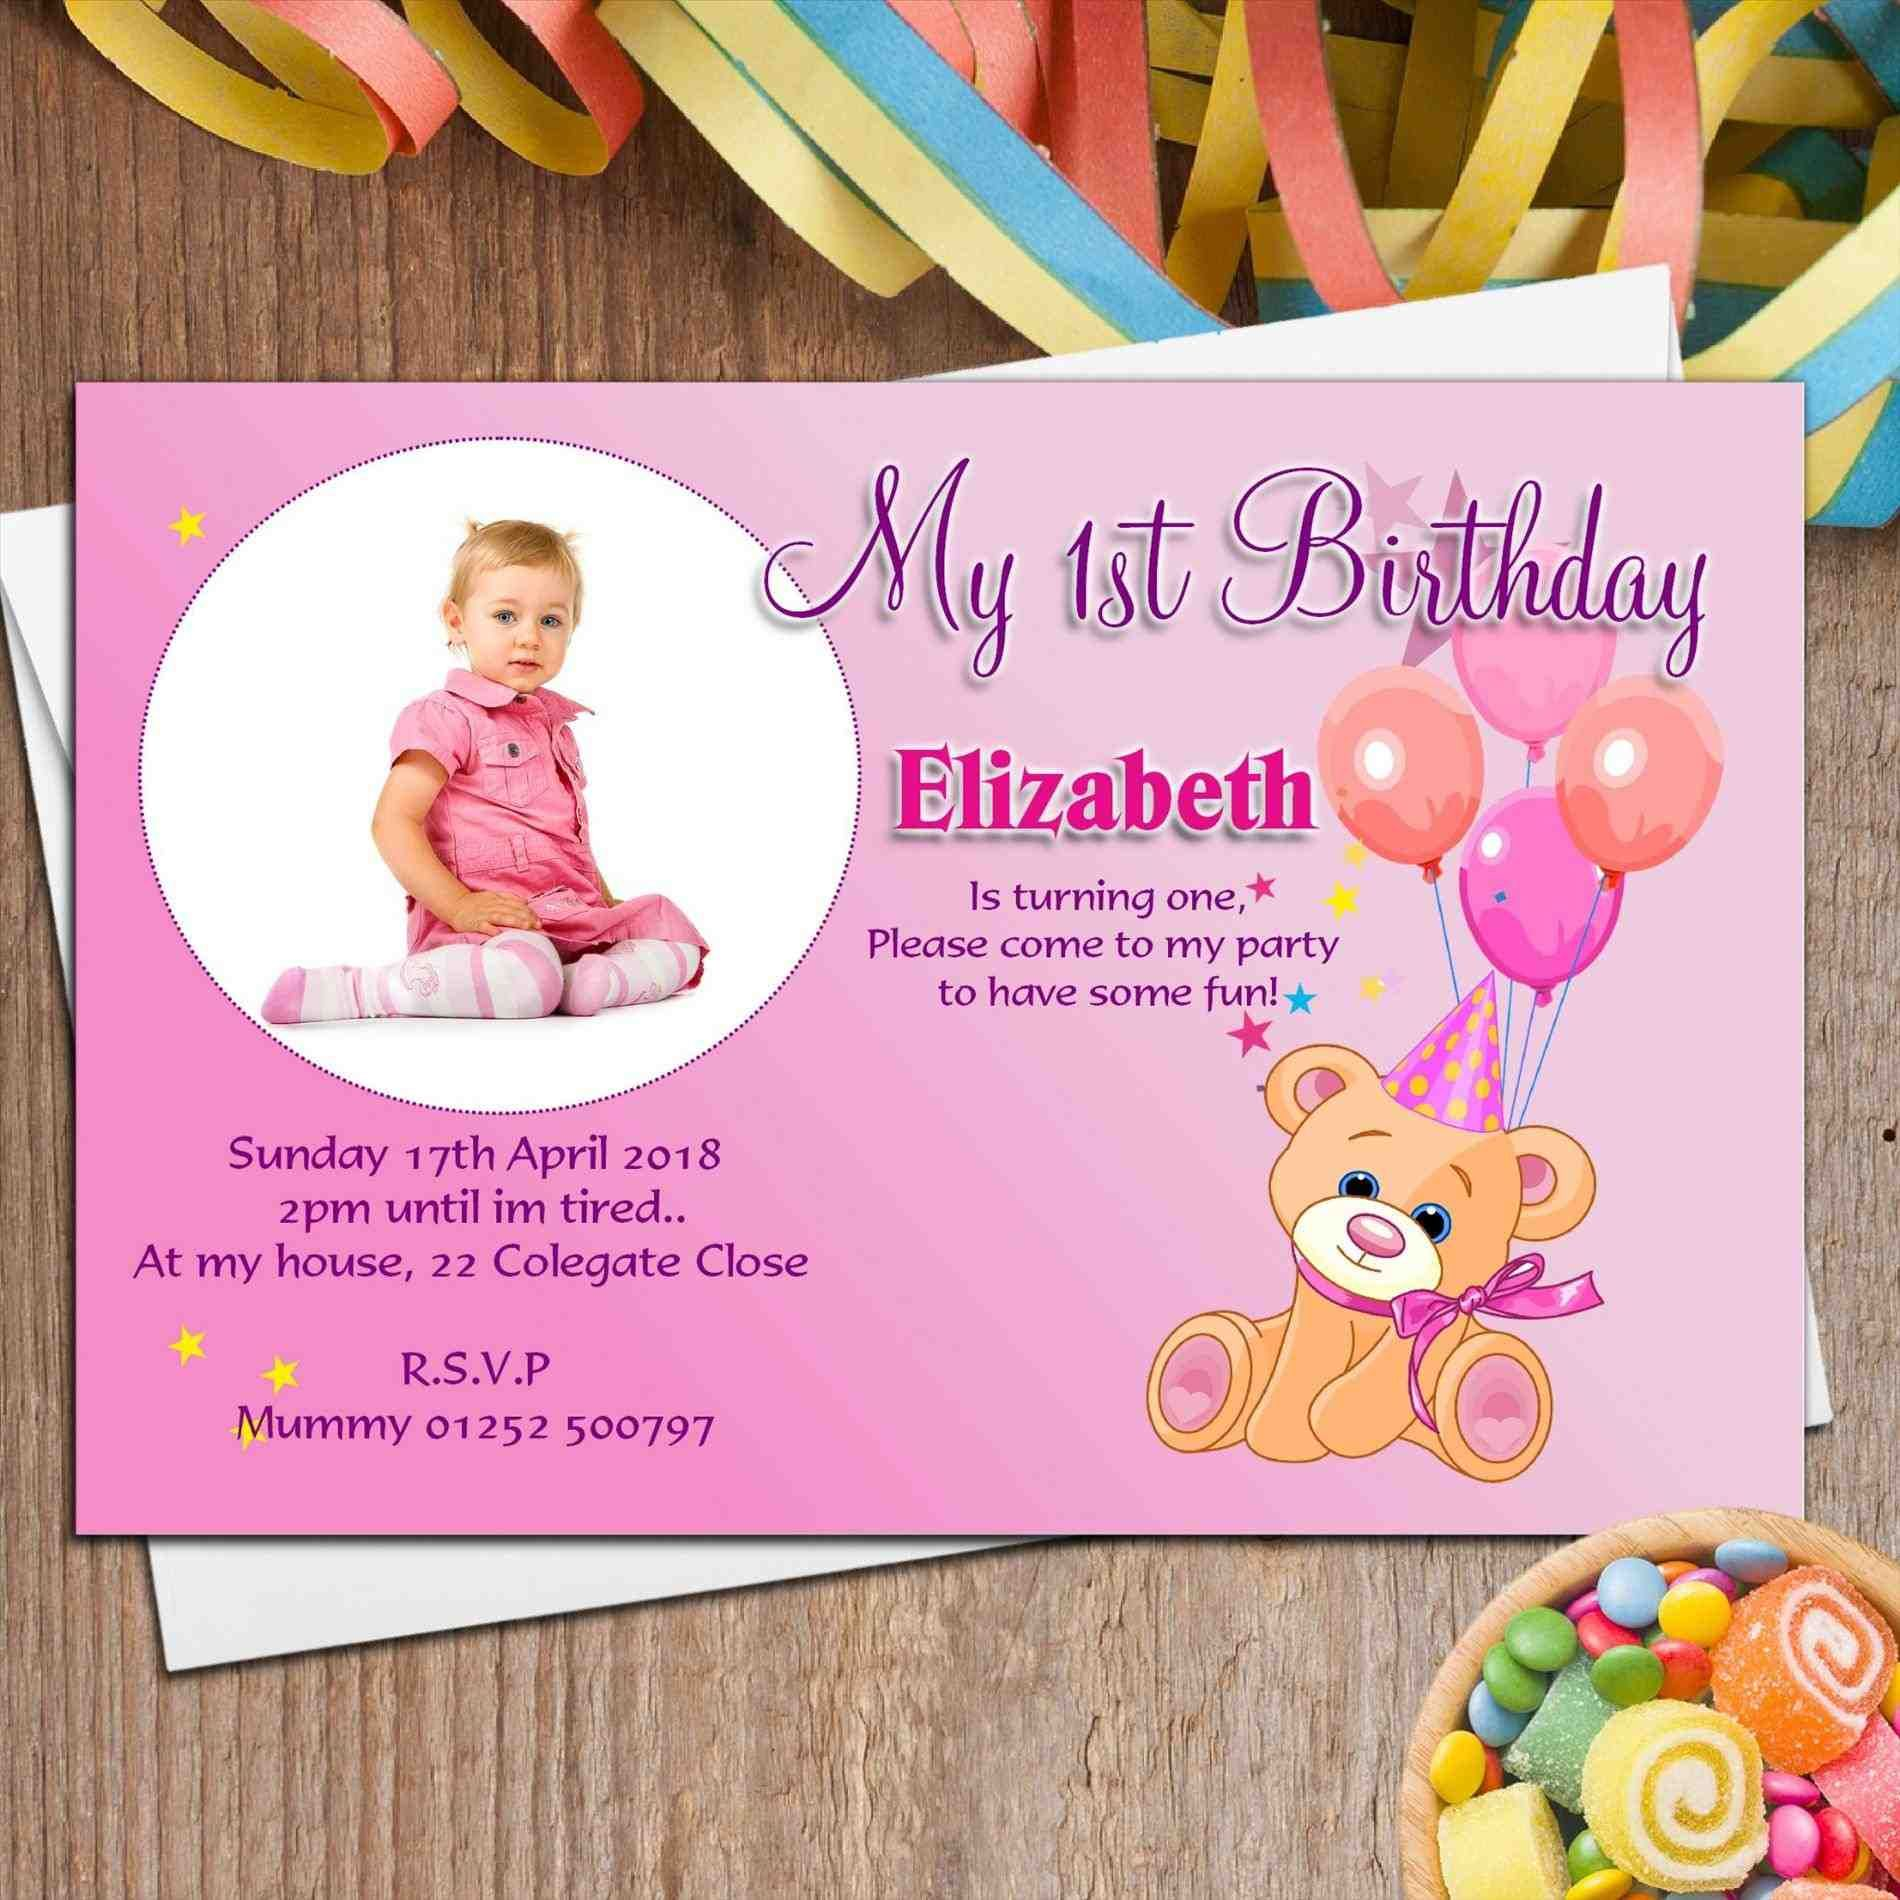 funny 1st birthday invitation wording ideas ; 242b95c24a04f3c7ec722d21bd9e6a08